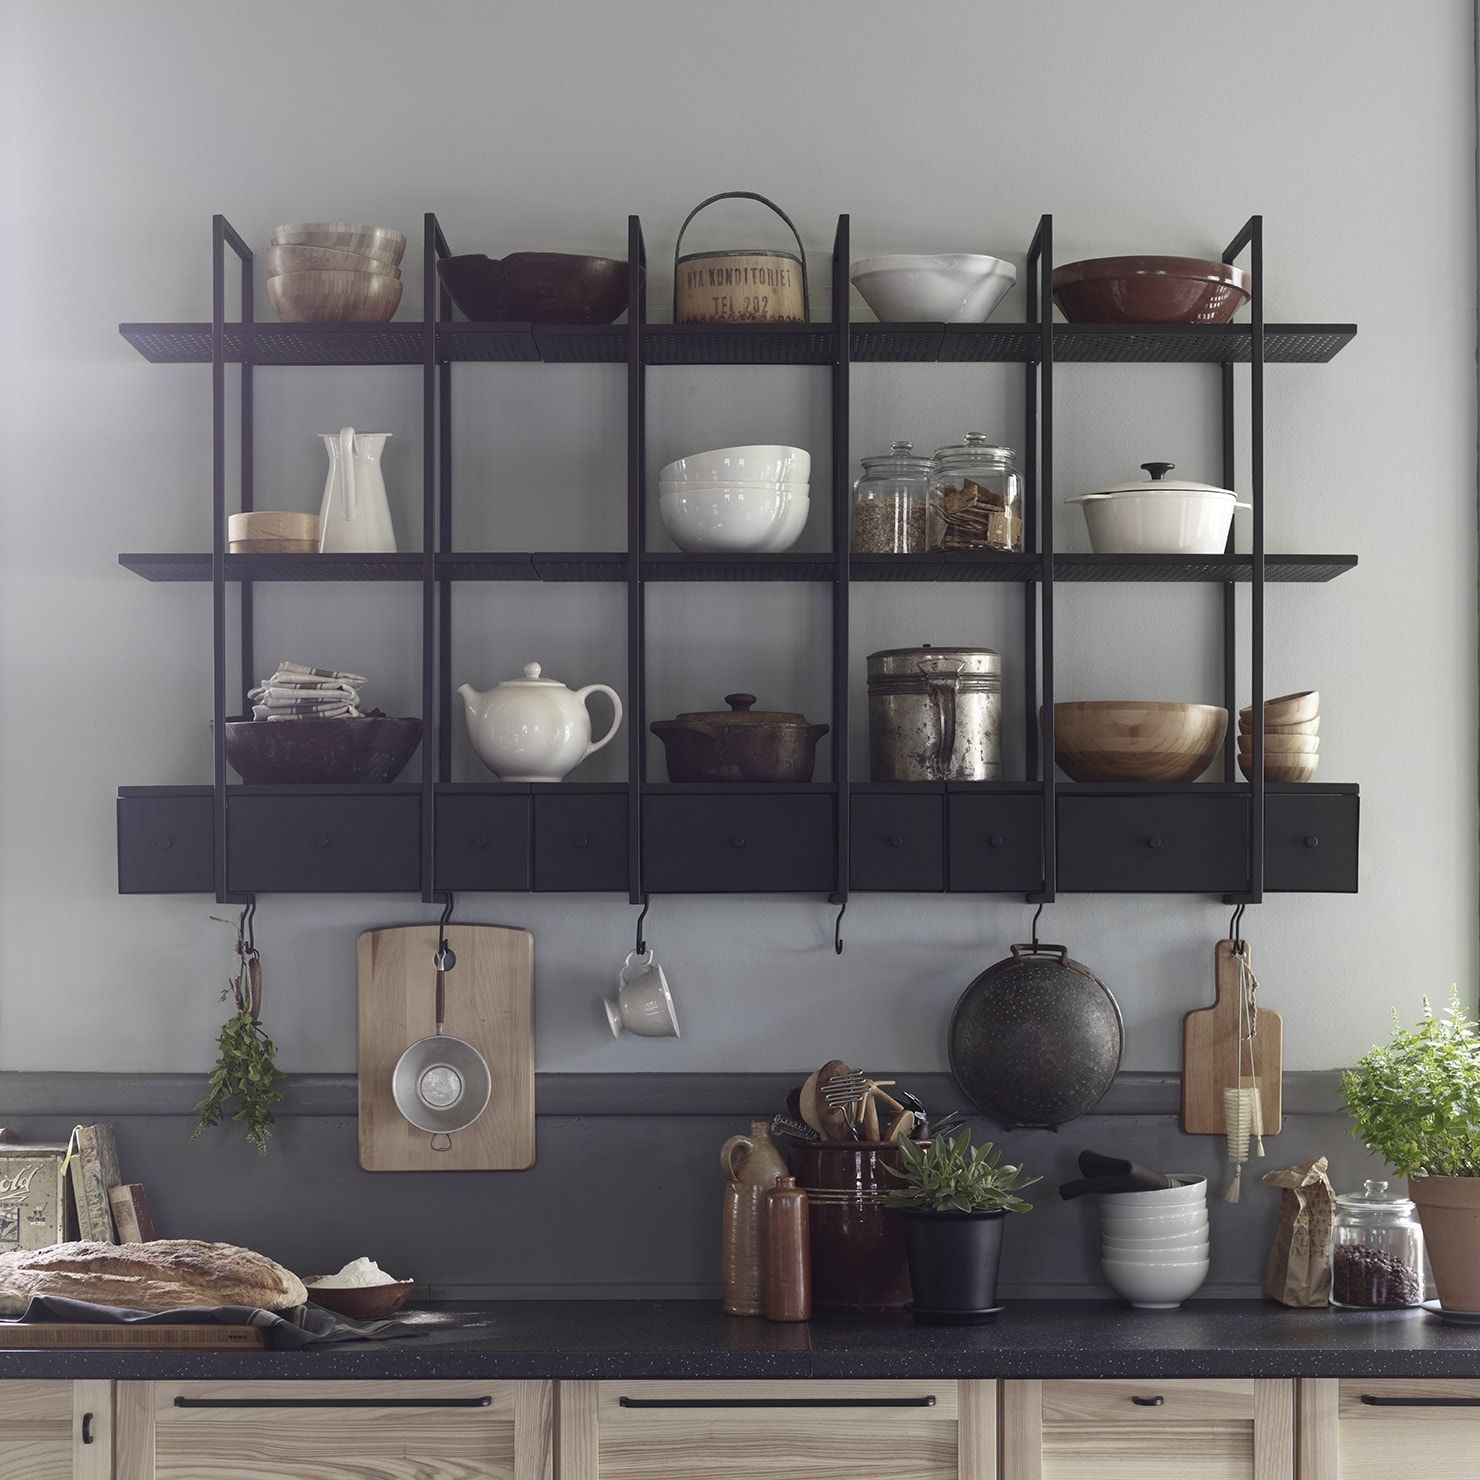 Etag re murale ikea ikea ce qui vous attend en magasin for Etagere metal pour cuisine